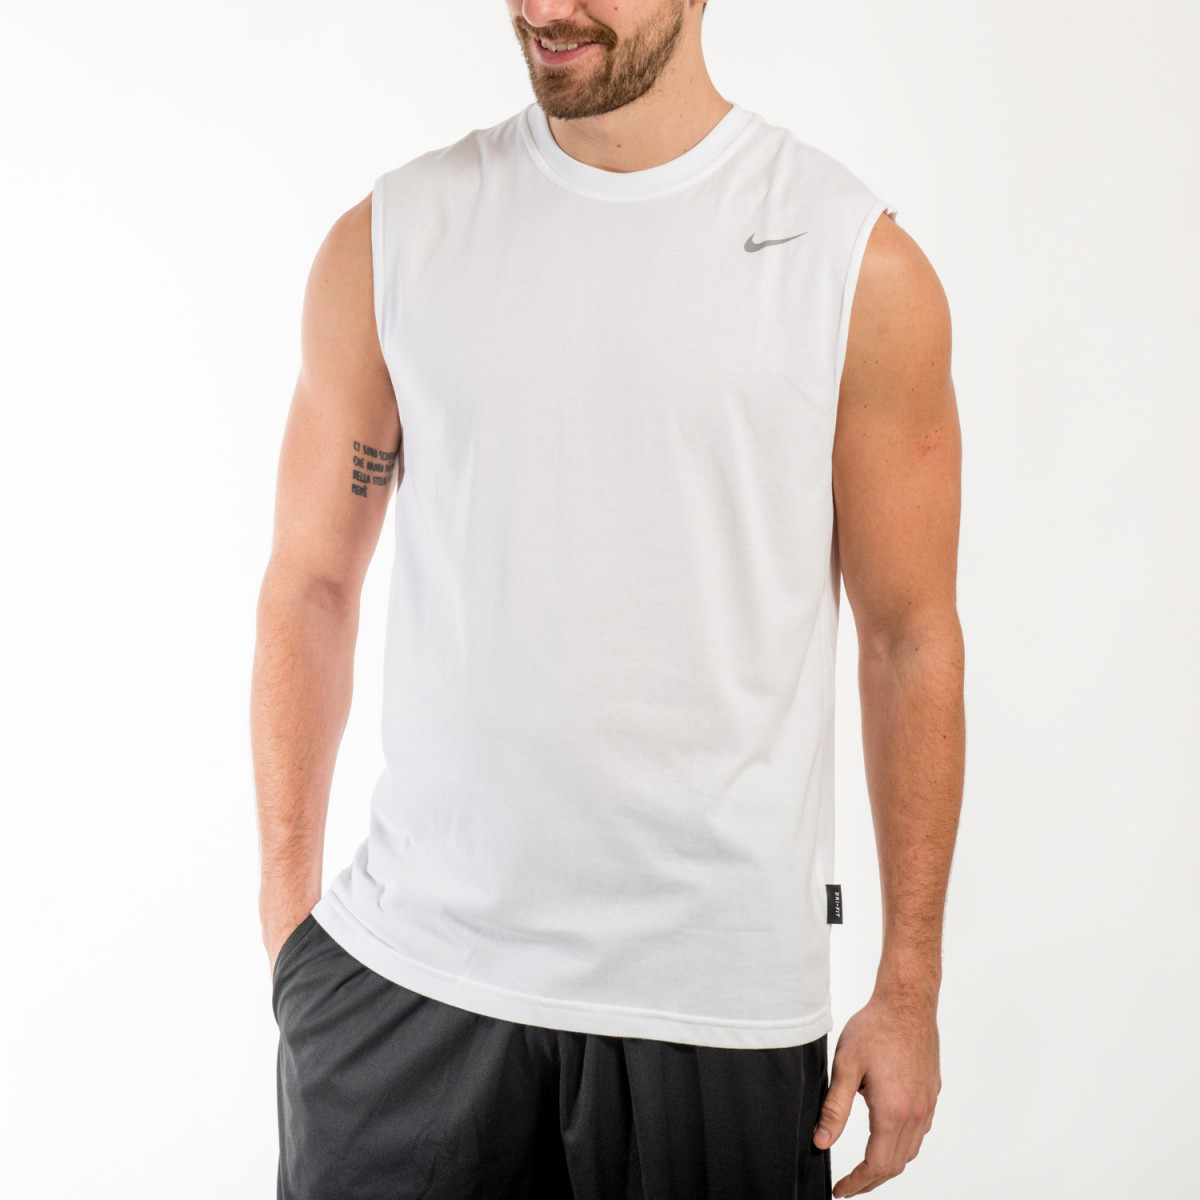 MUSCULOSA S/M NIKE DFCT SL VERSION 2.0